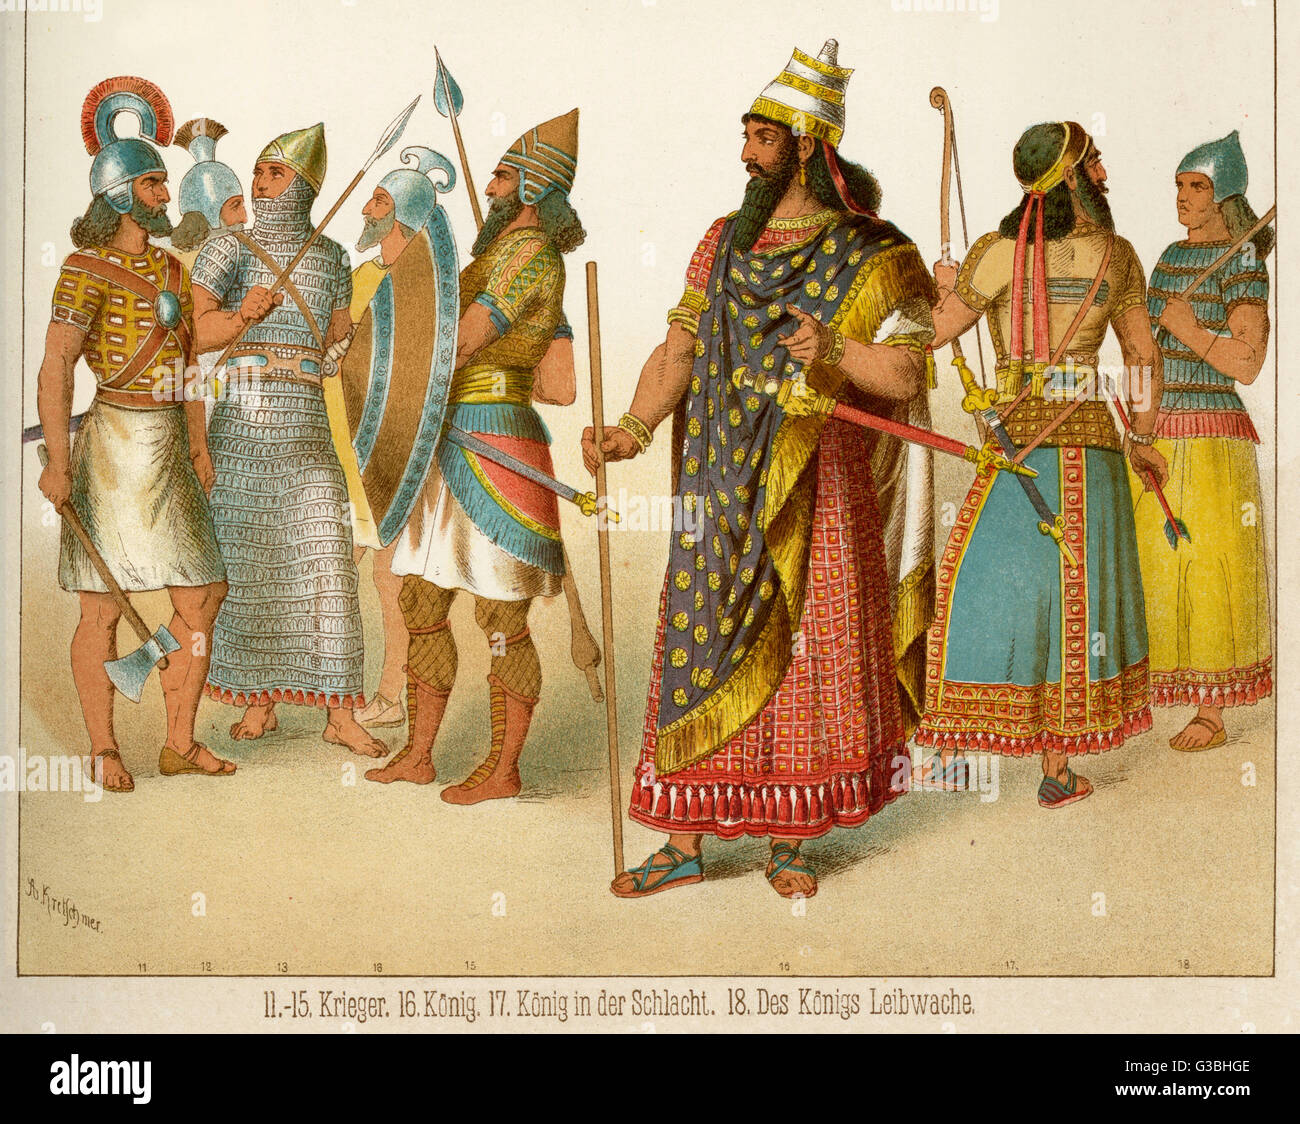 ANCIENT ASSYRIA Weaponry and armour of  Warriors, the King in his  court regalia and ready for  battle and the costume - Stock Image